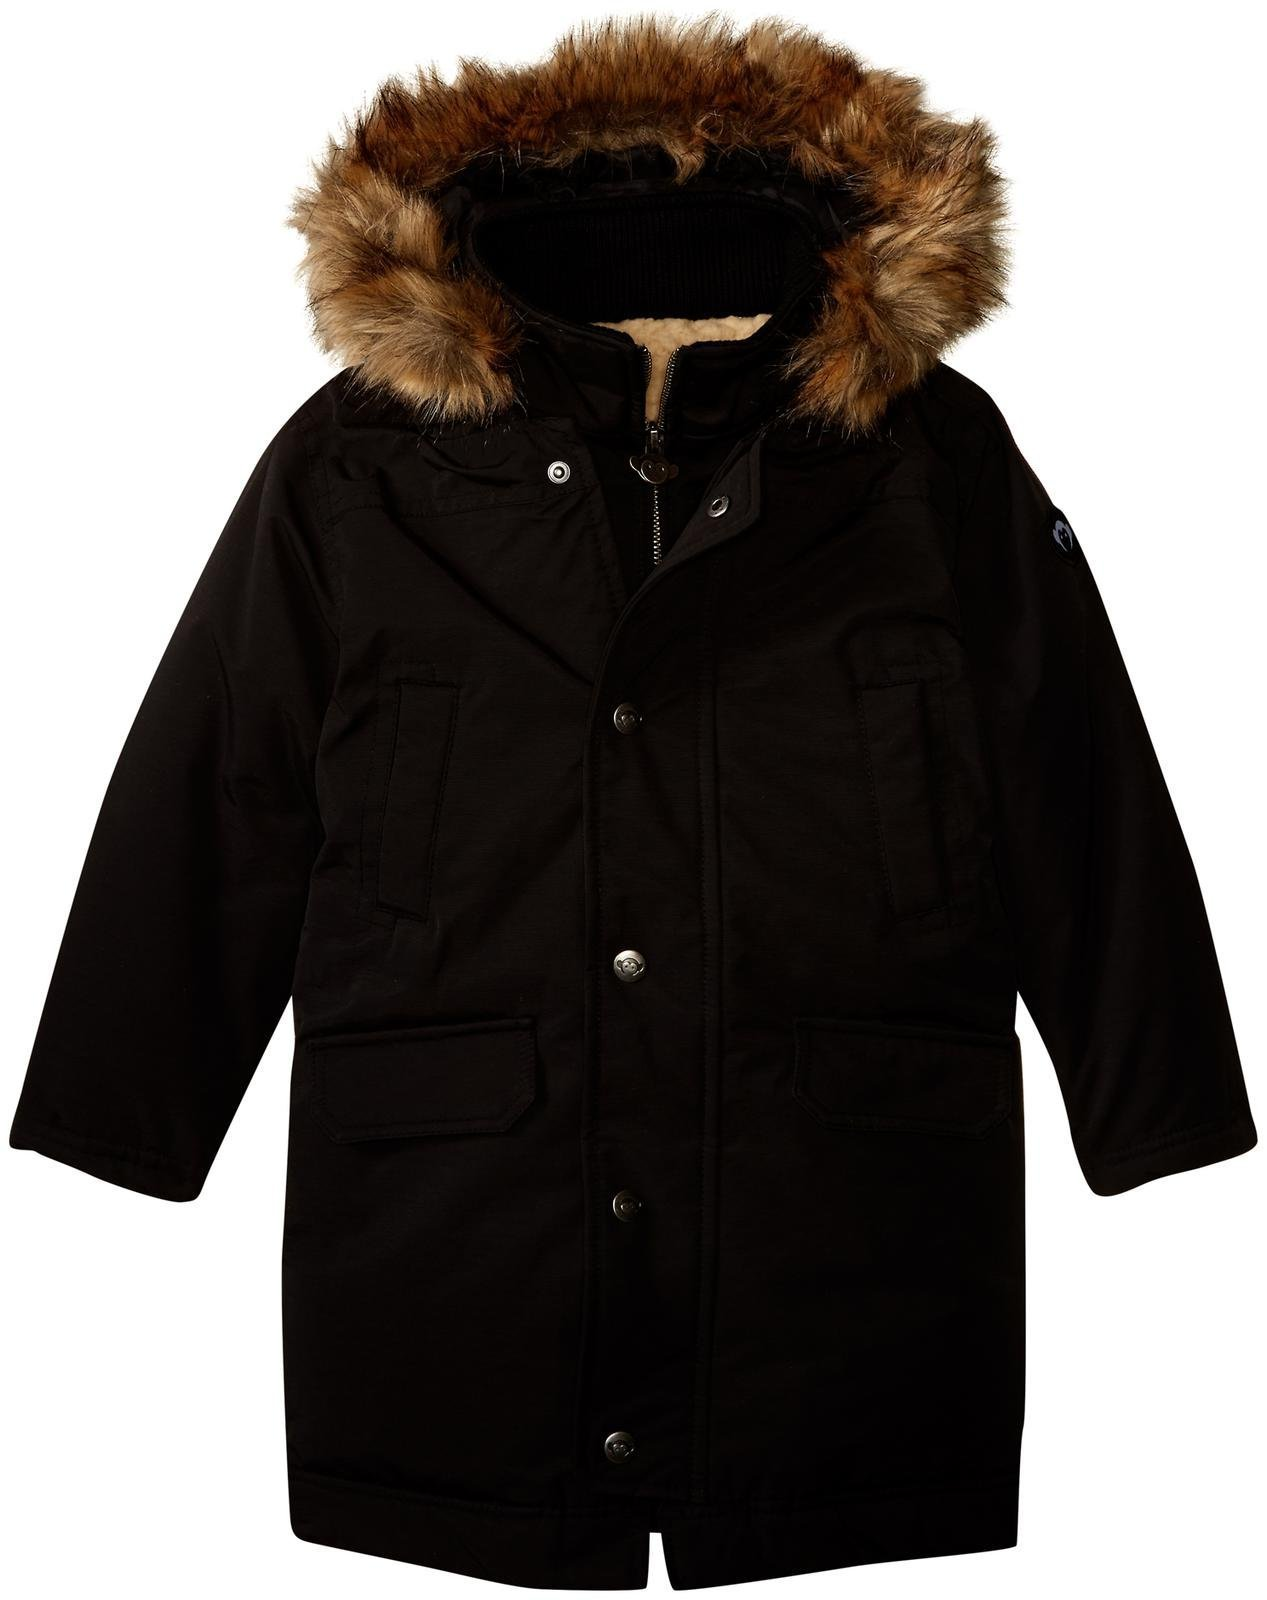 Appaman Boys' Pratt Down Parka, Black, 6